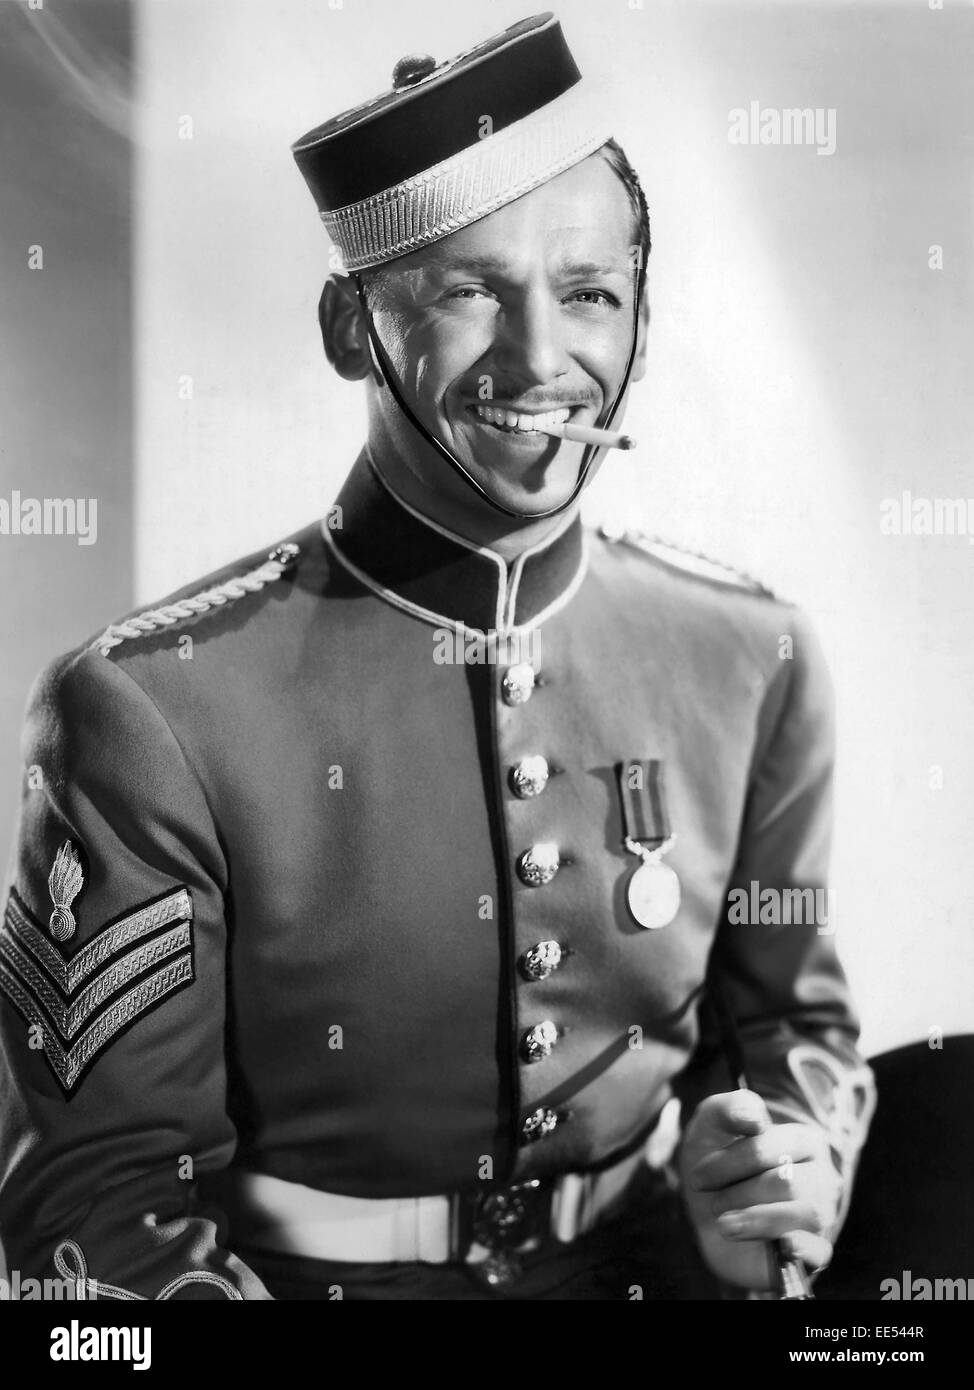 Douglas Fairbanks Jr On Set Of The Film Gunga Din 1939 Stock Photo Alamy Clay sliced off his cock, right before he did it he yelled gunga din. https www alamy com stock photo douglas fairbanks jr on set of the film gunga din 1939 77559687 html